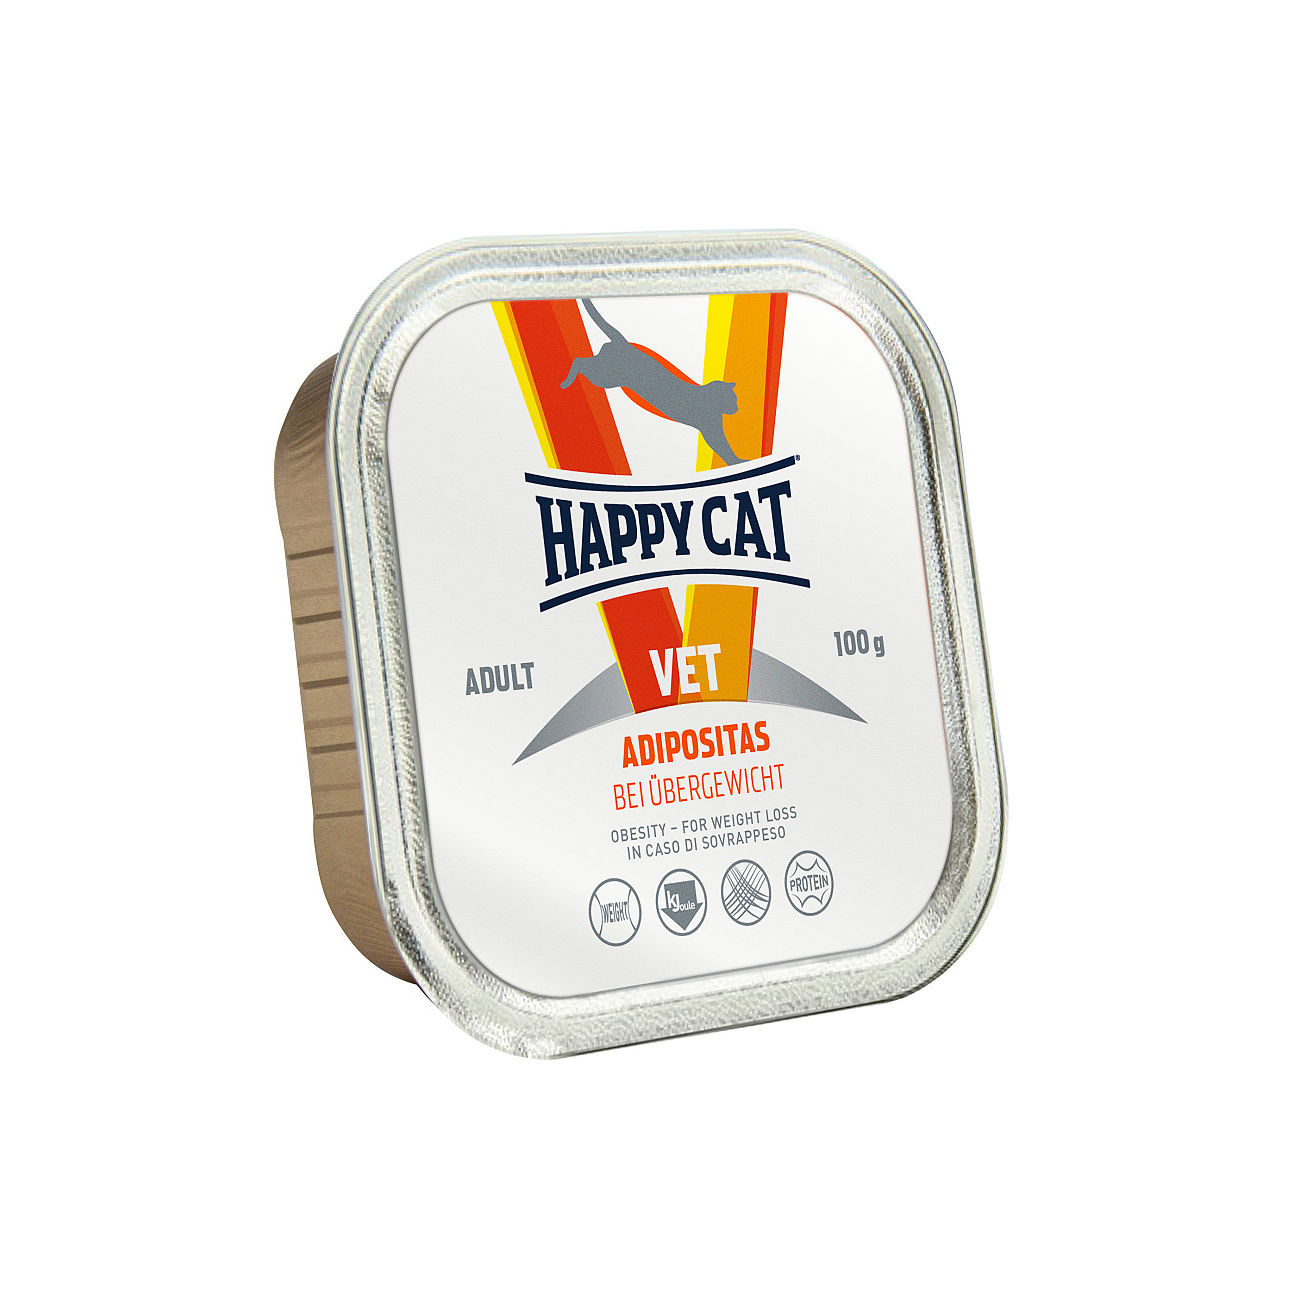 Happy Cat VET Dieta Adipositas 100 g